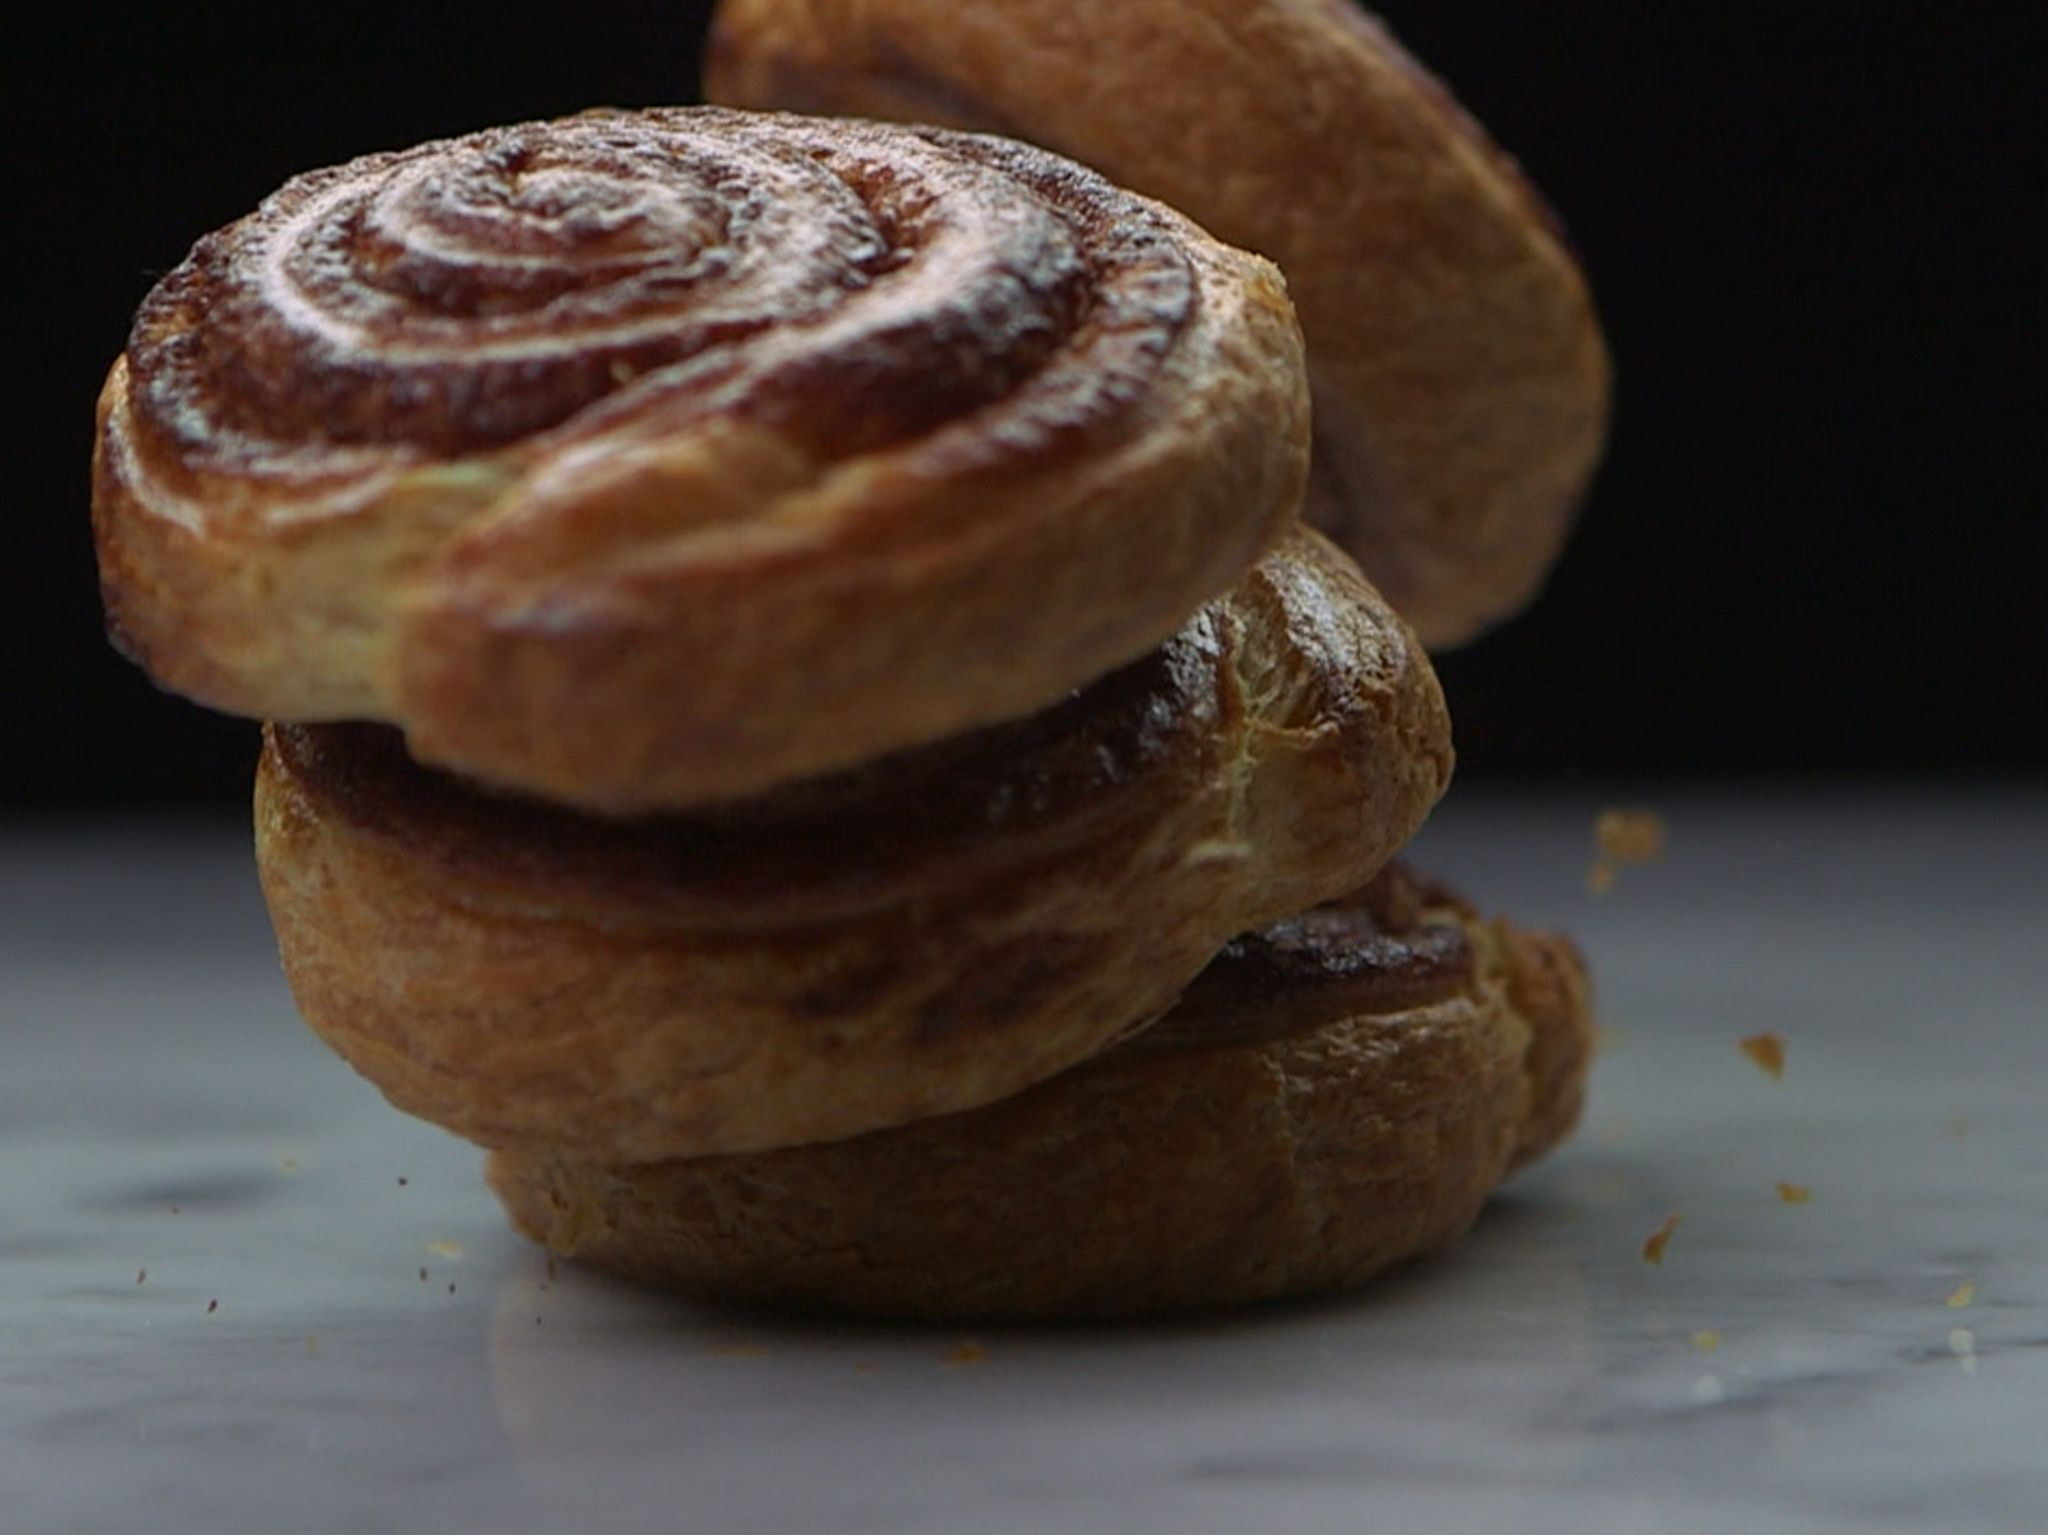 Cinnamon Brioche. This image is from Food Factory. [Photo of the day - November 2020]